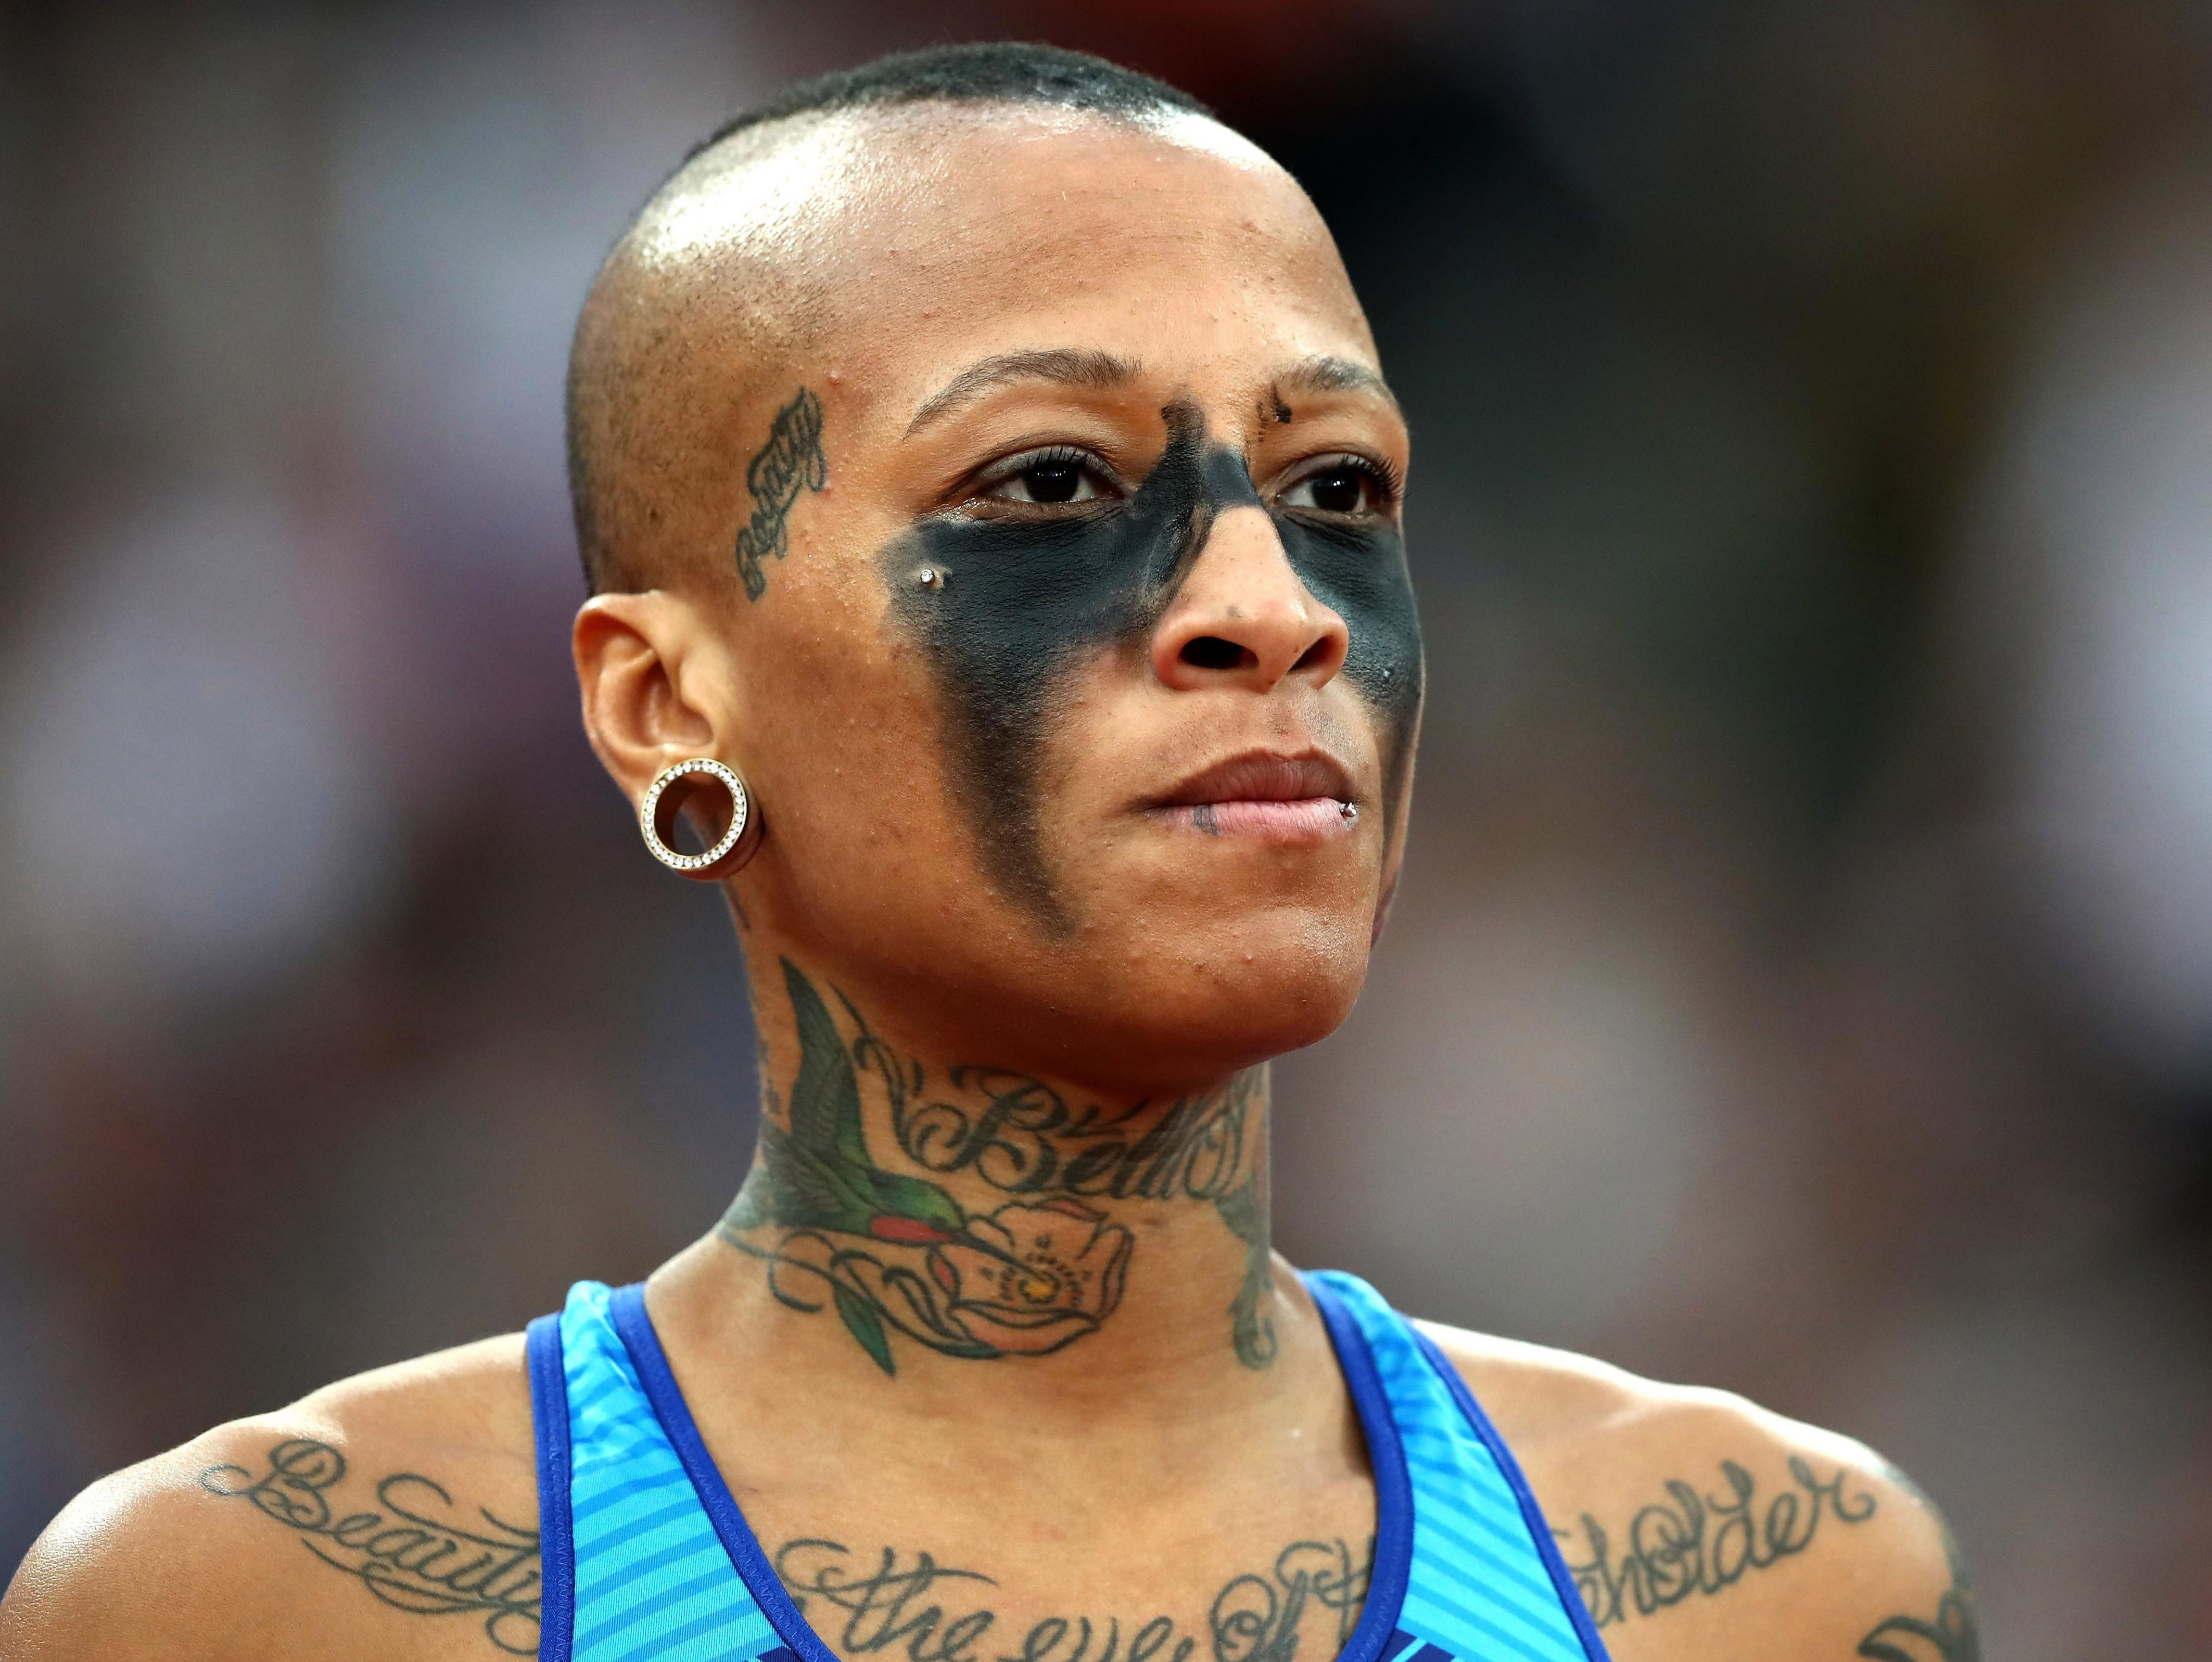 Inika McPherson sported eye make-up during the high jump final